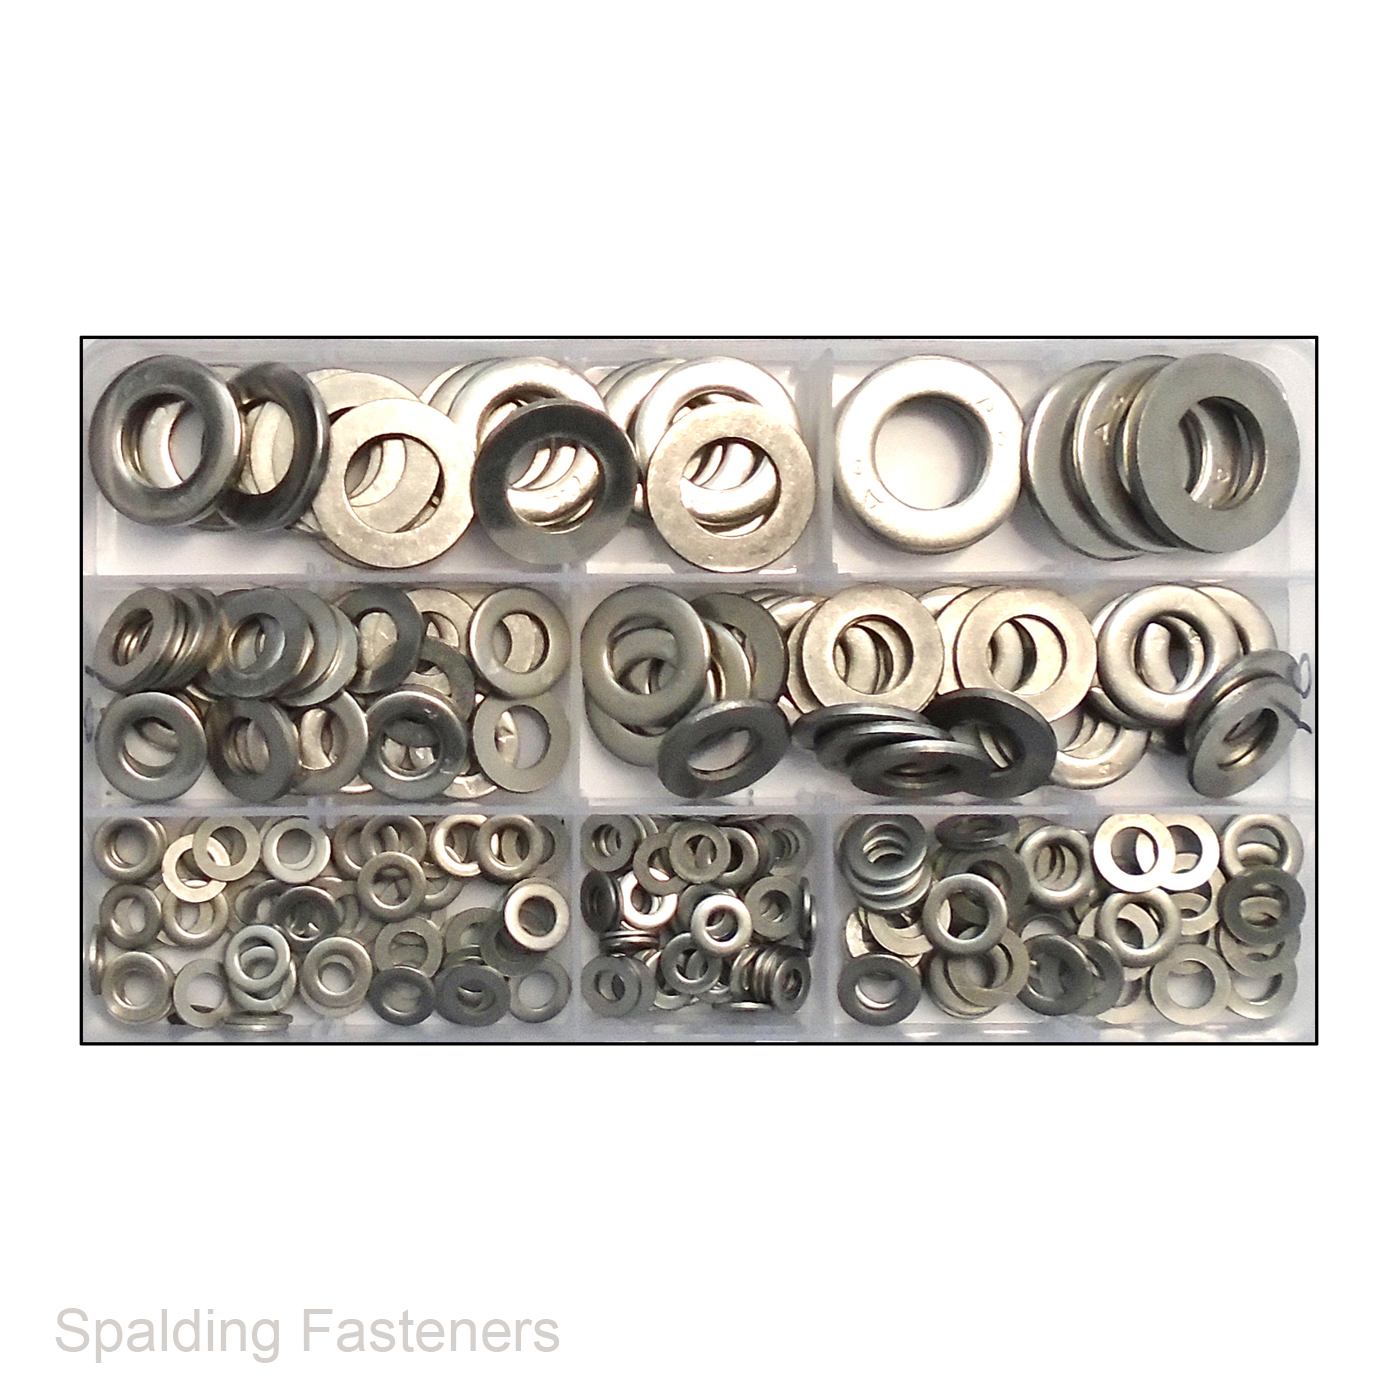 M4,5,6,8,10,12 A4 Marine Grade 316 Stainless Steel Flat Washers Form A